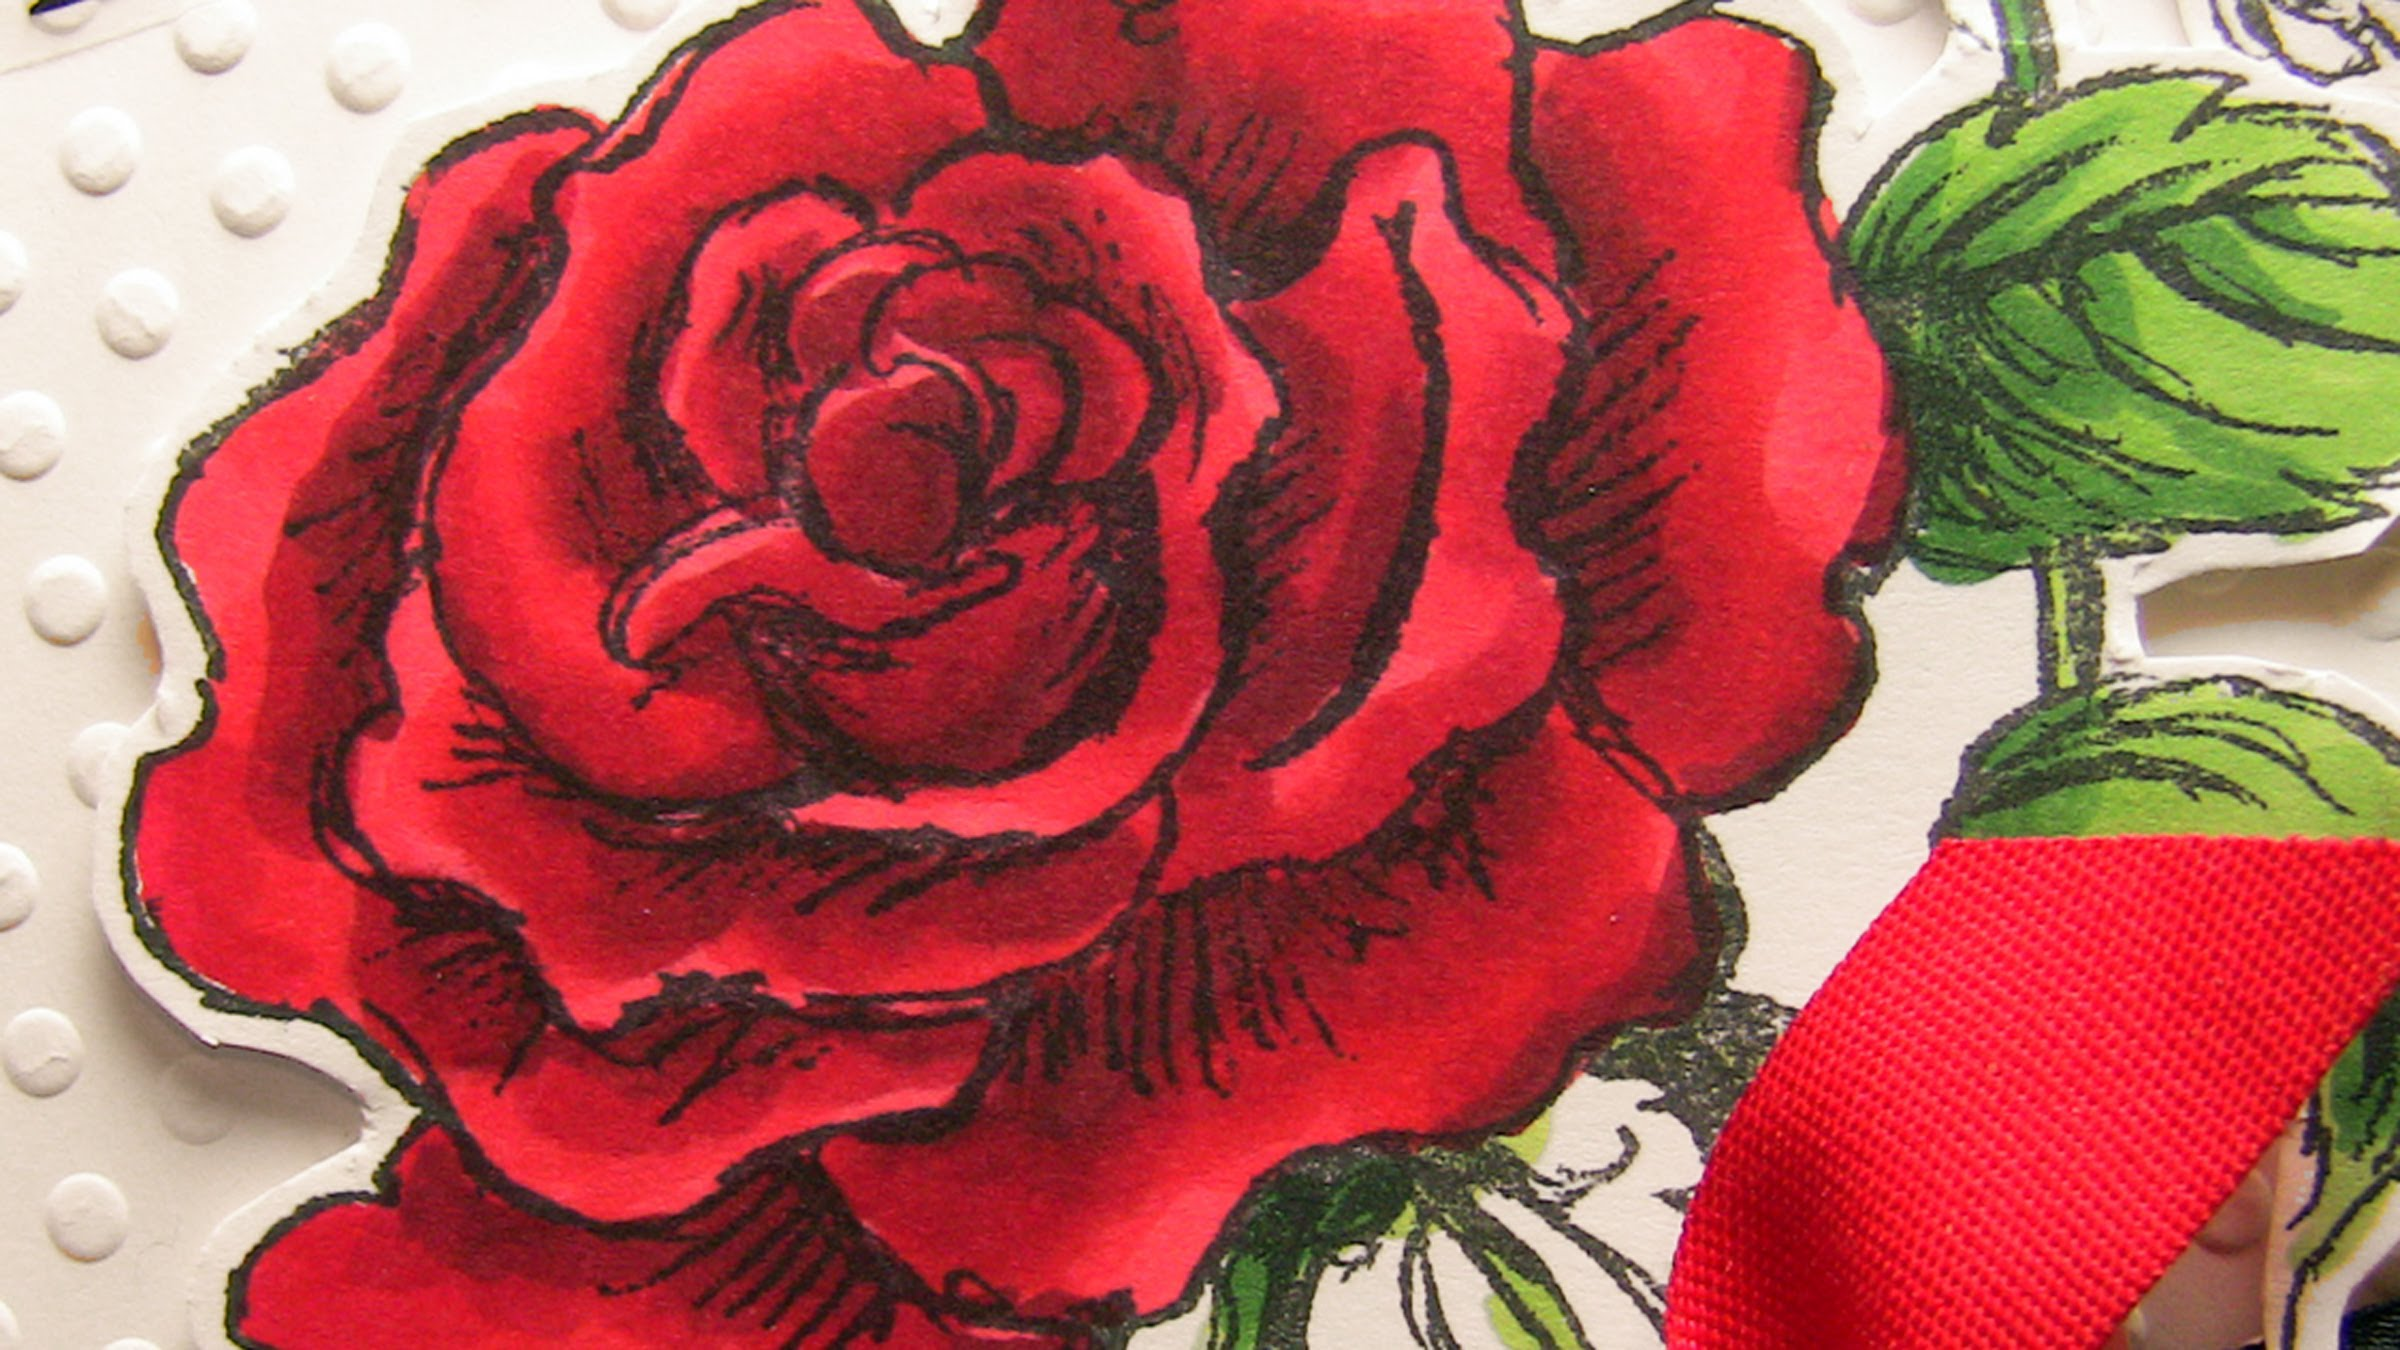 Drawn red rose pen drawing Red a (Copic markers)